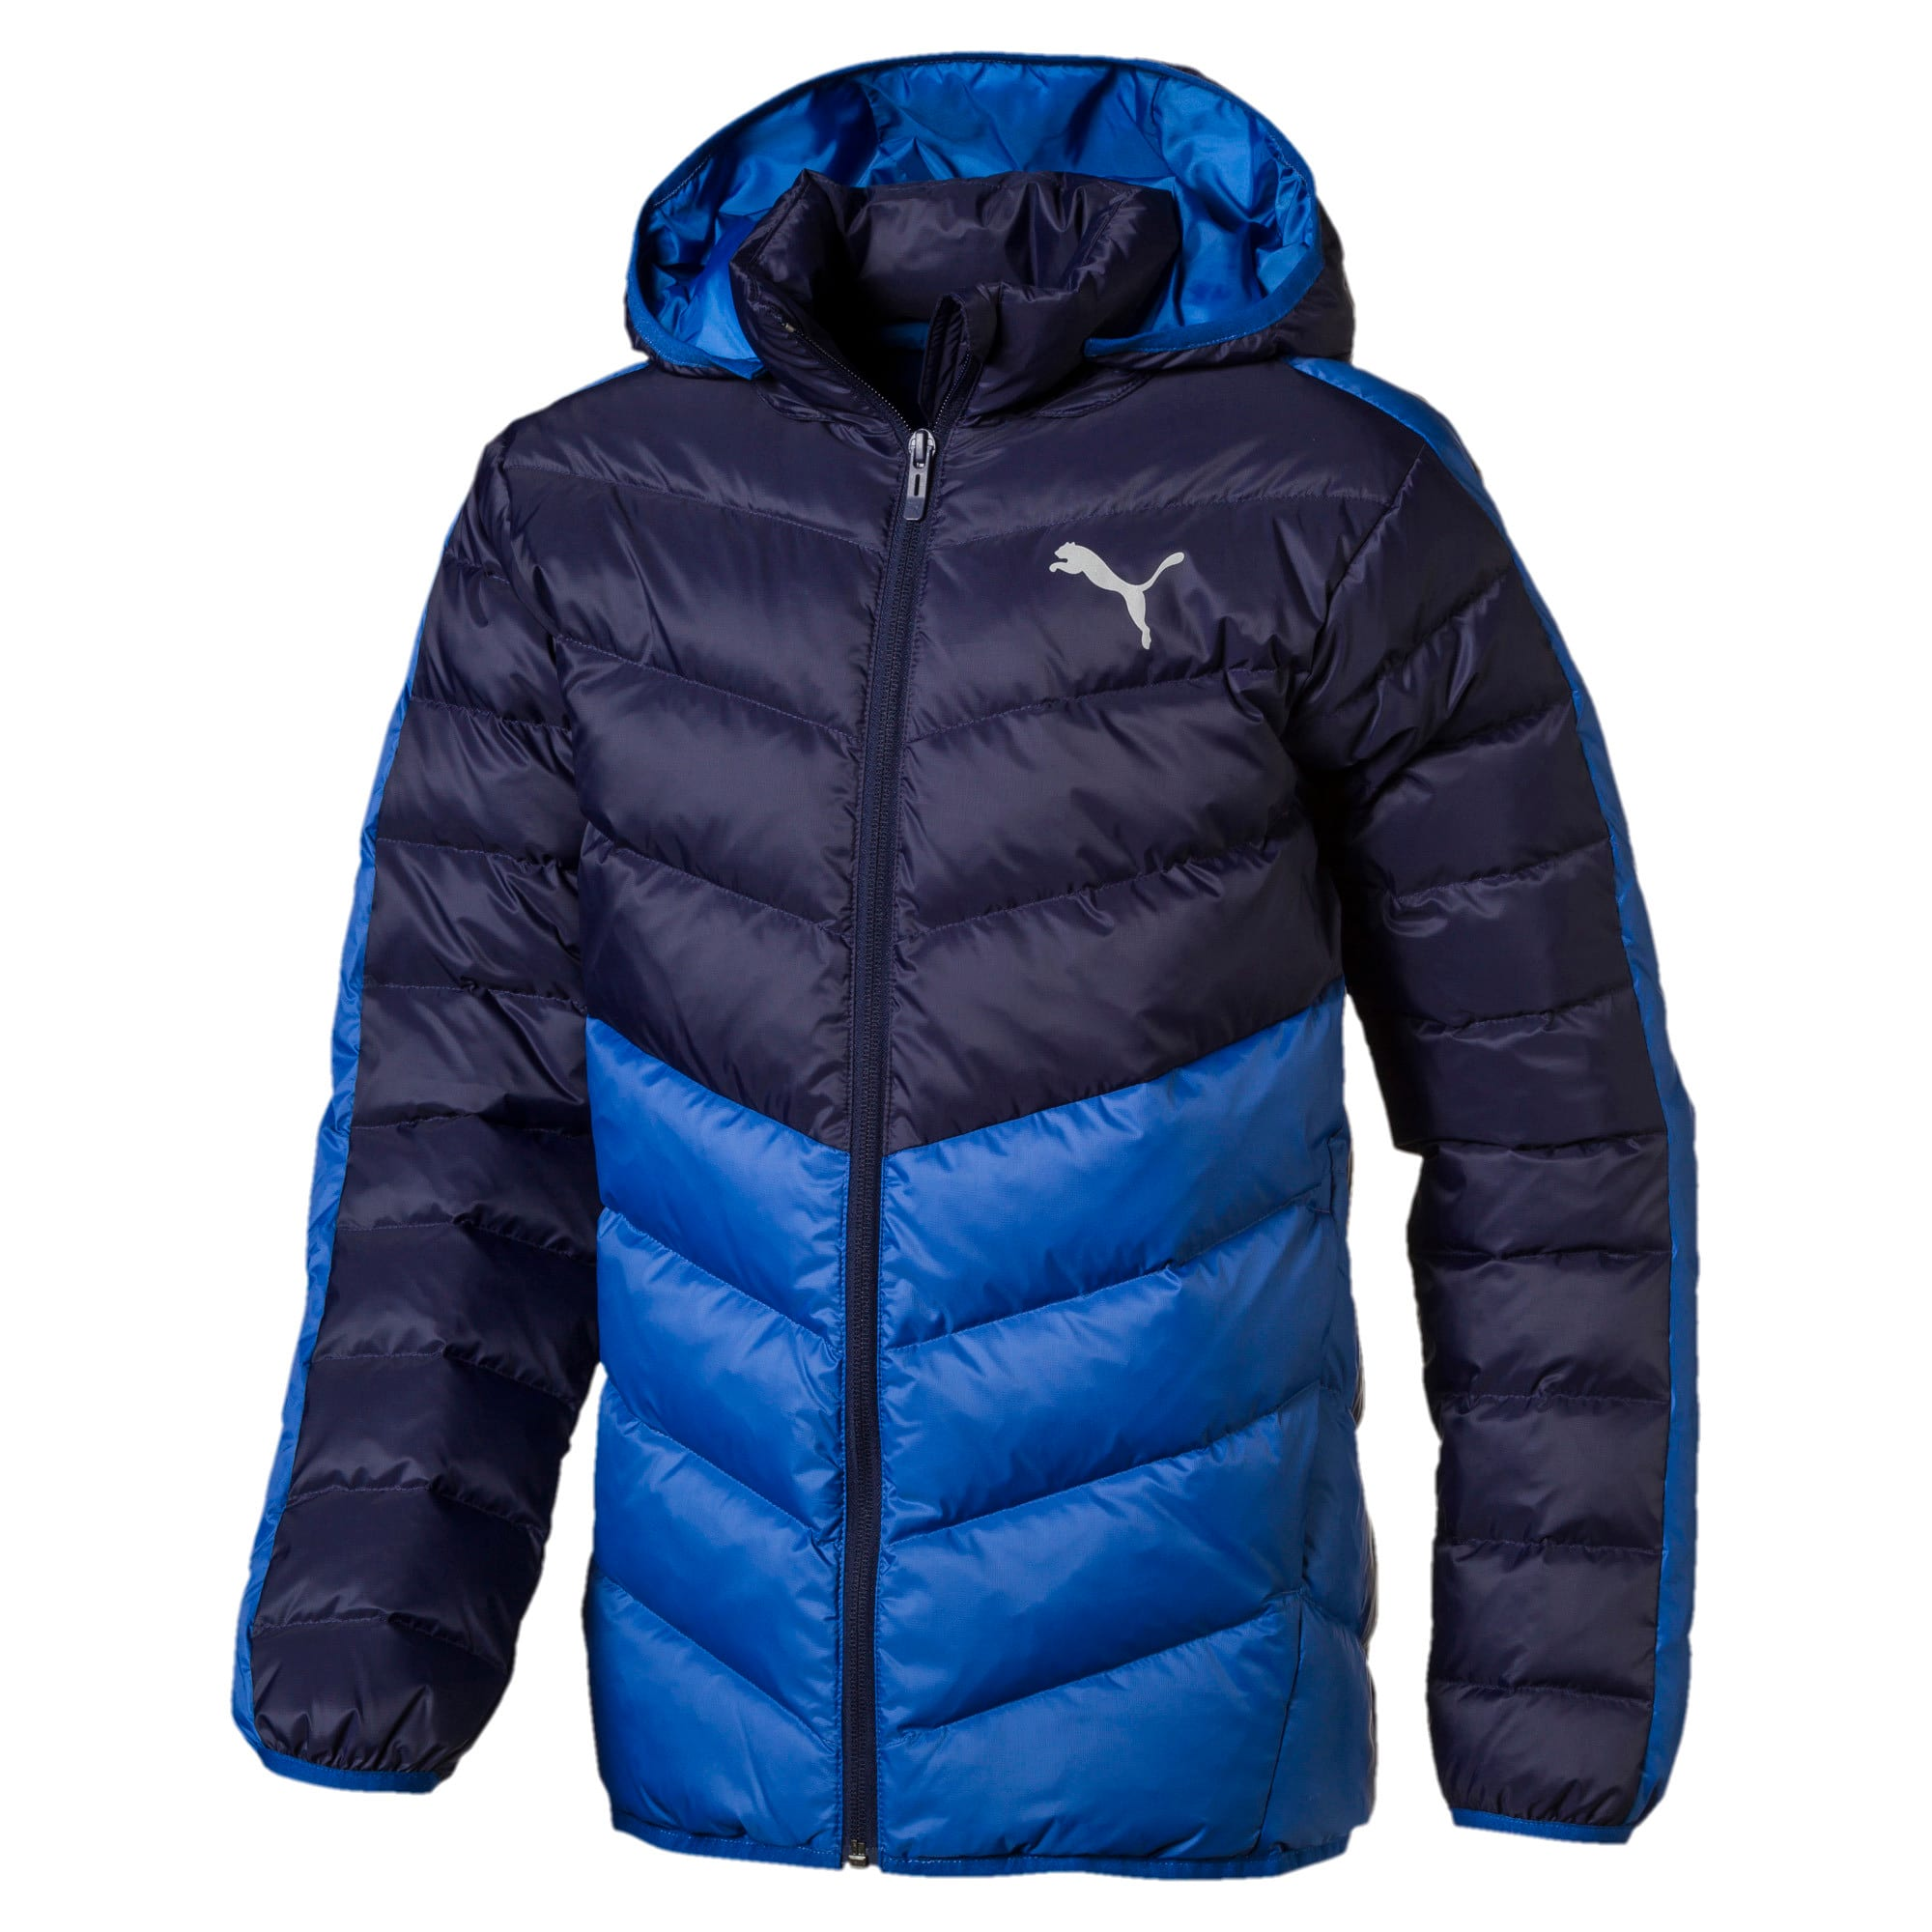 Thumbnail 1 of Active Boys' Jacket, Galaxy Blue-Peacoat, medium